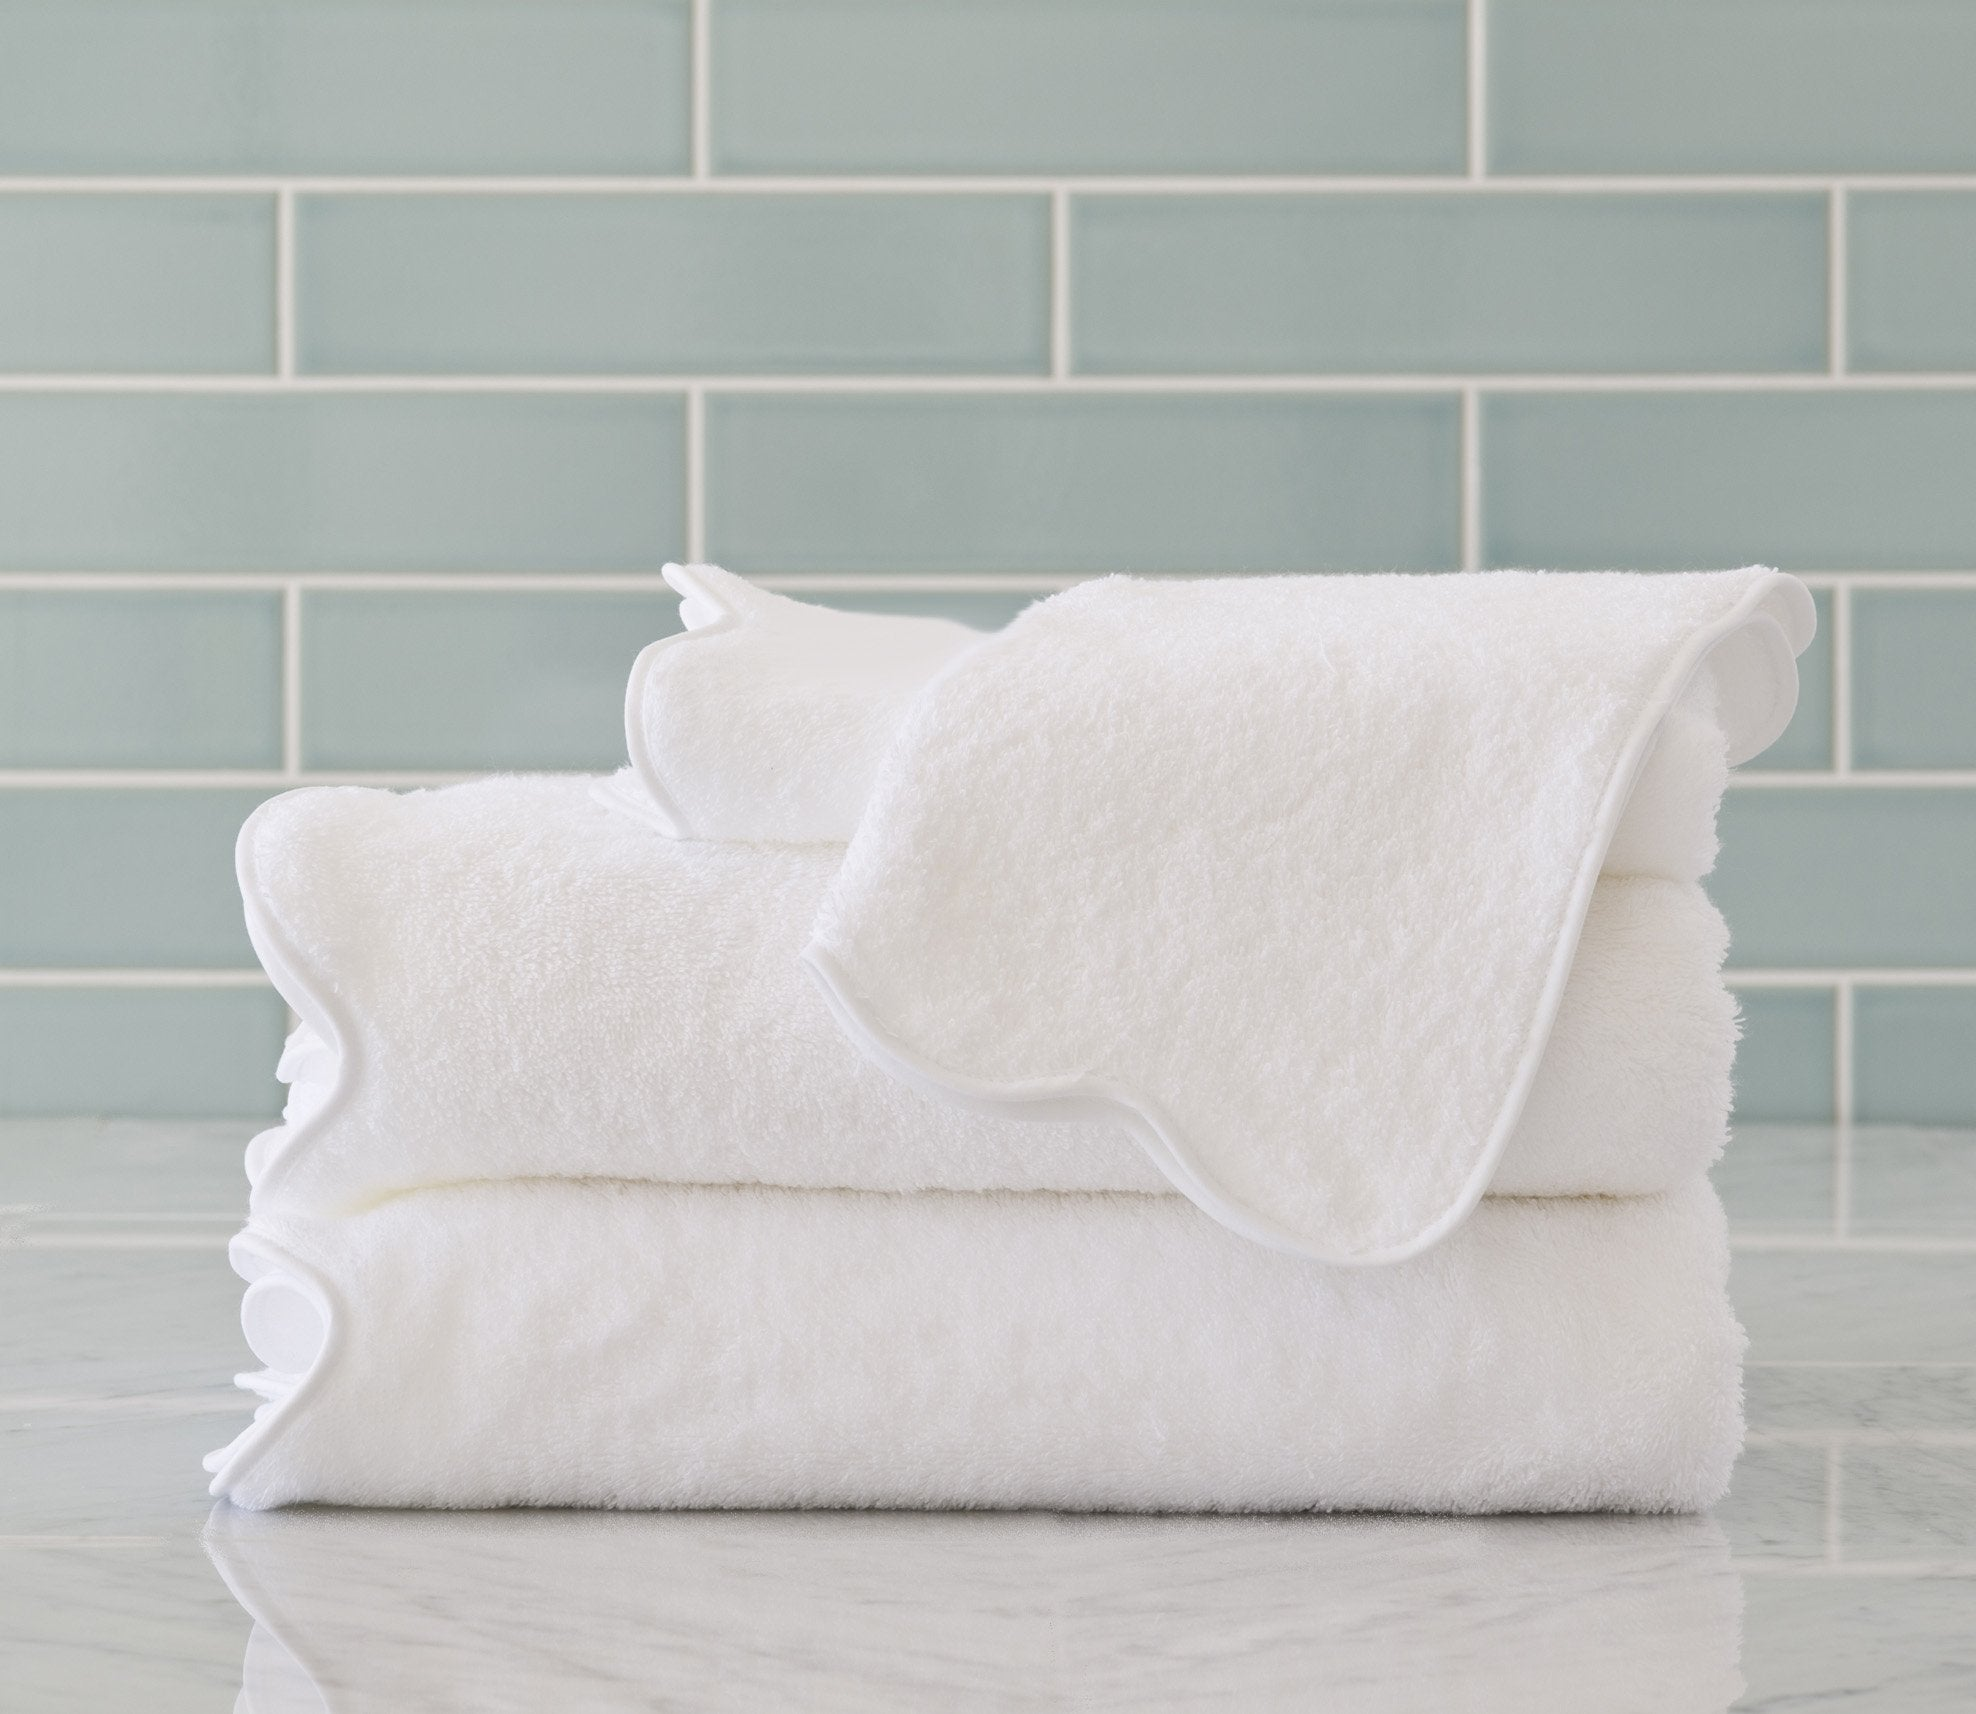 Scallop White Bath Towels Product Image 1